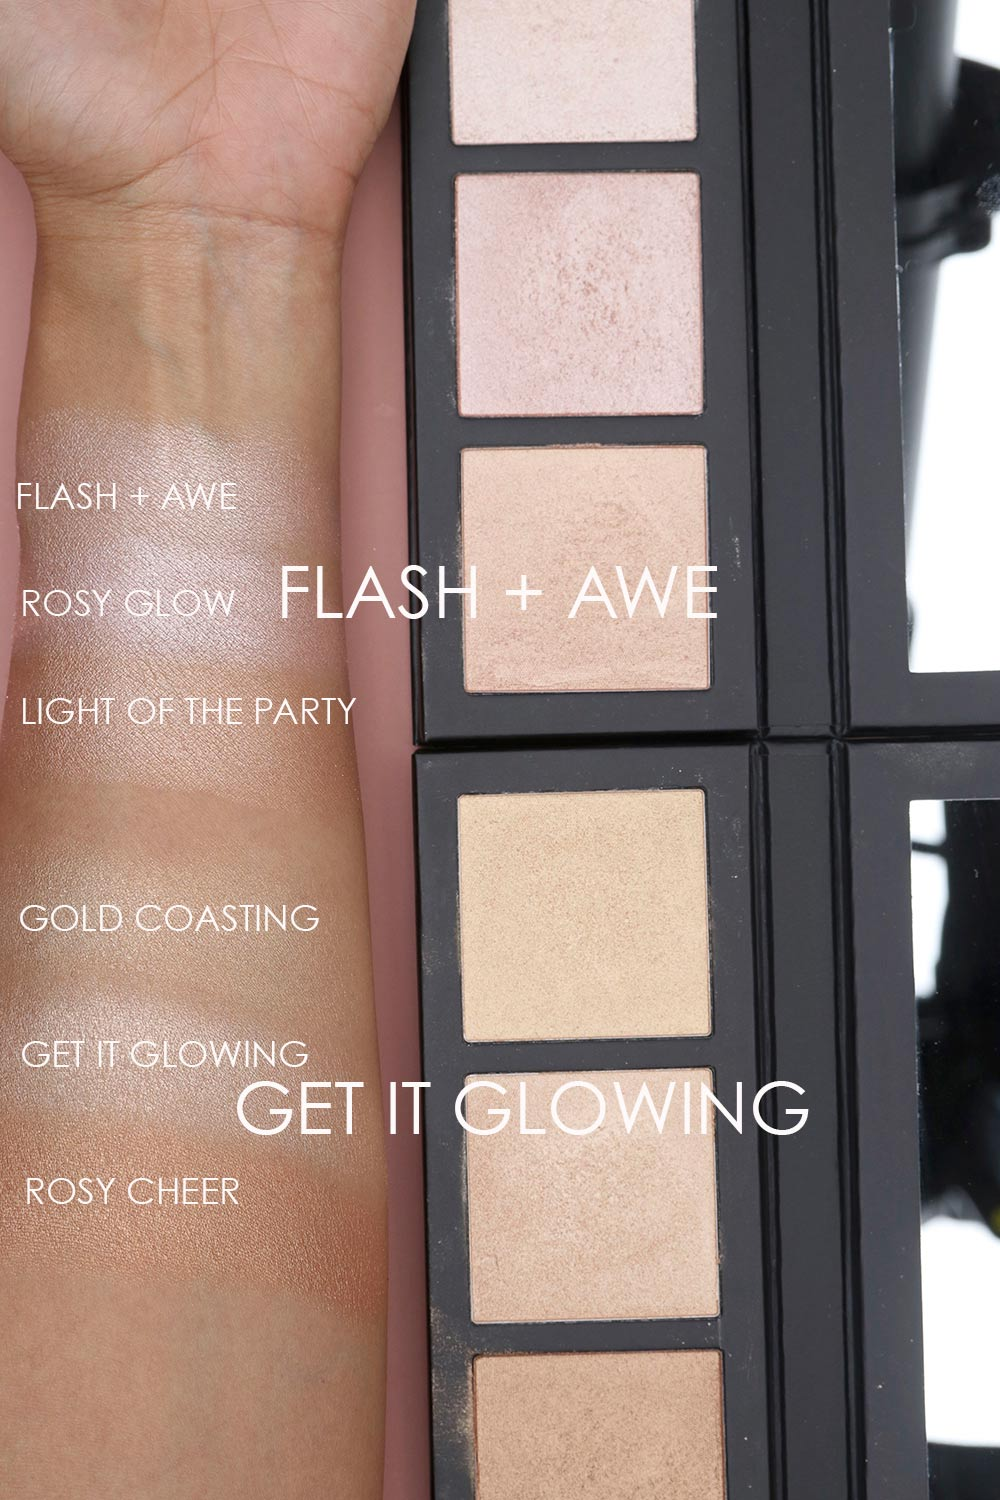 9 Things To Know About The Mac Hyper Real Glow